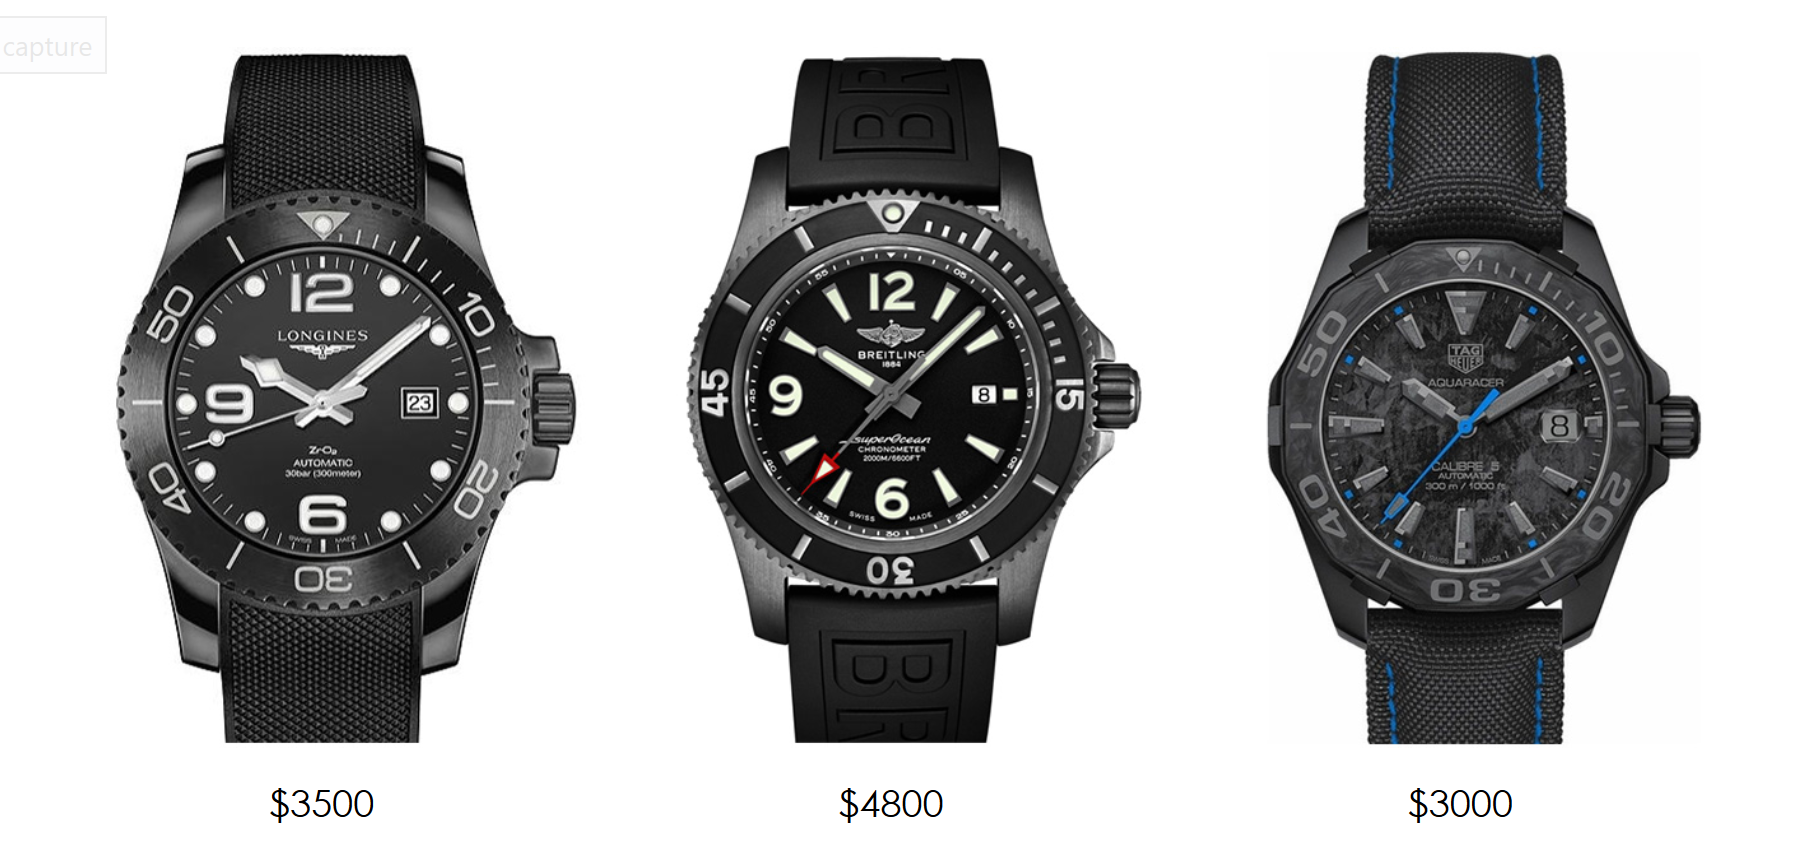 3watches.png